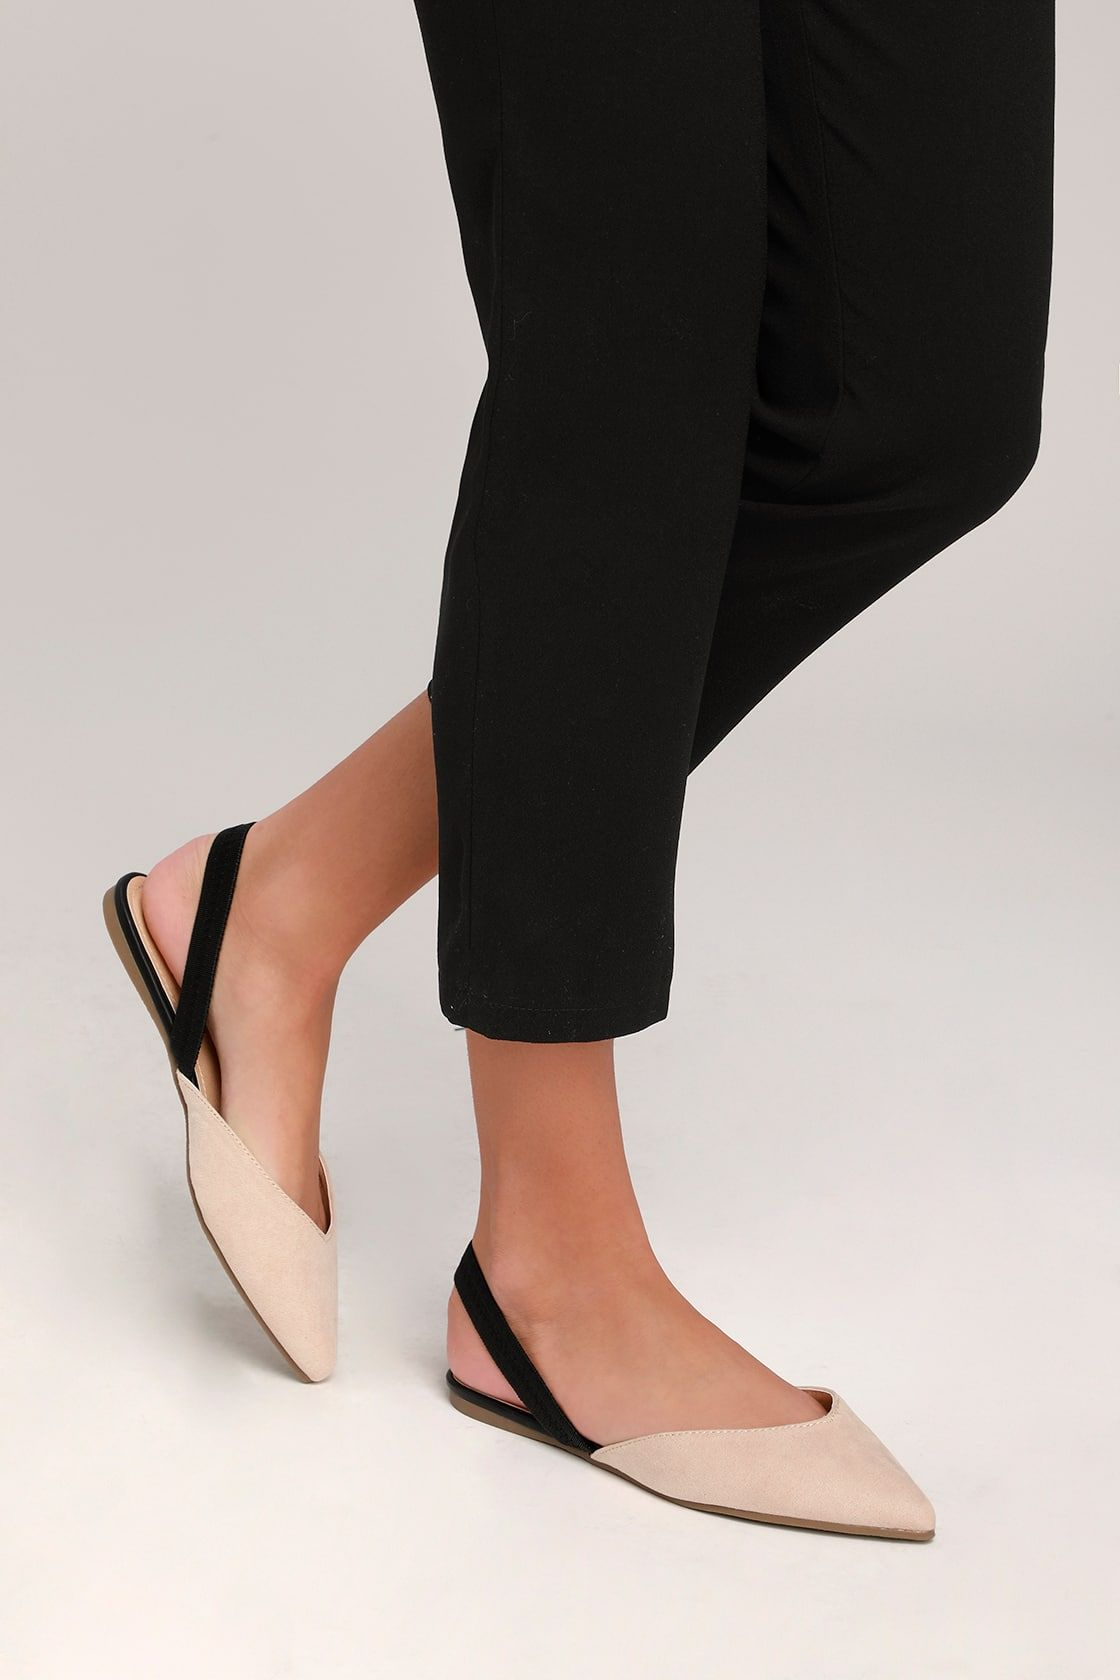 883bf02bc06 Lulus | Mae Nude and Black Suede Pointed-Toe Slingback Flats | Size ...